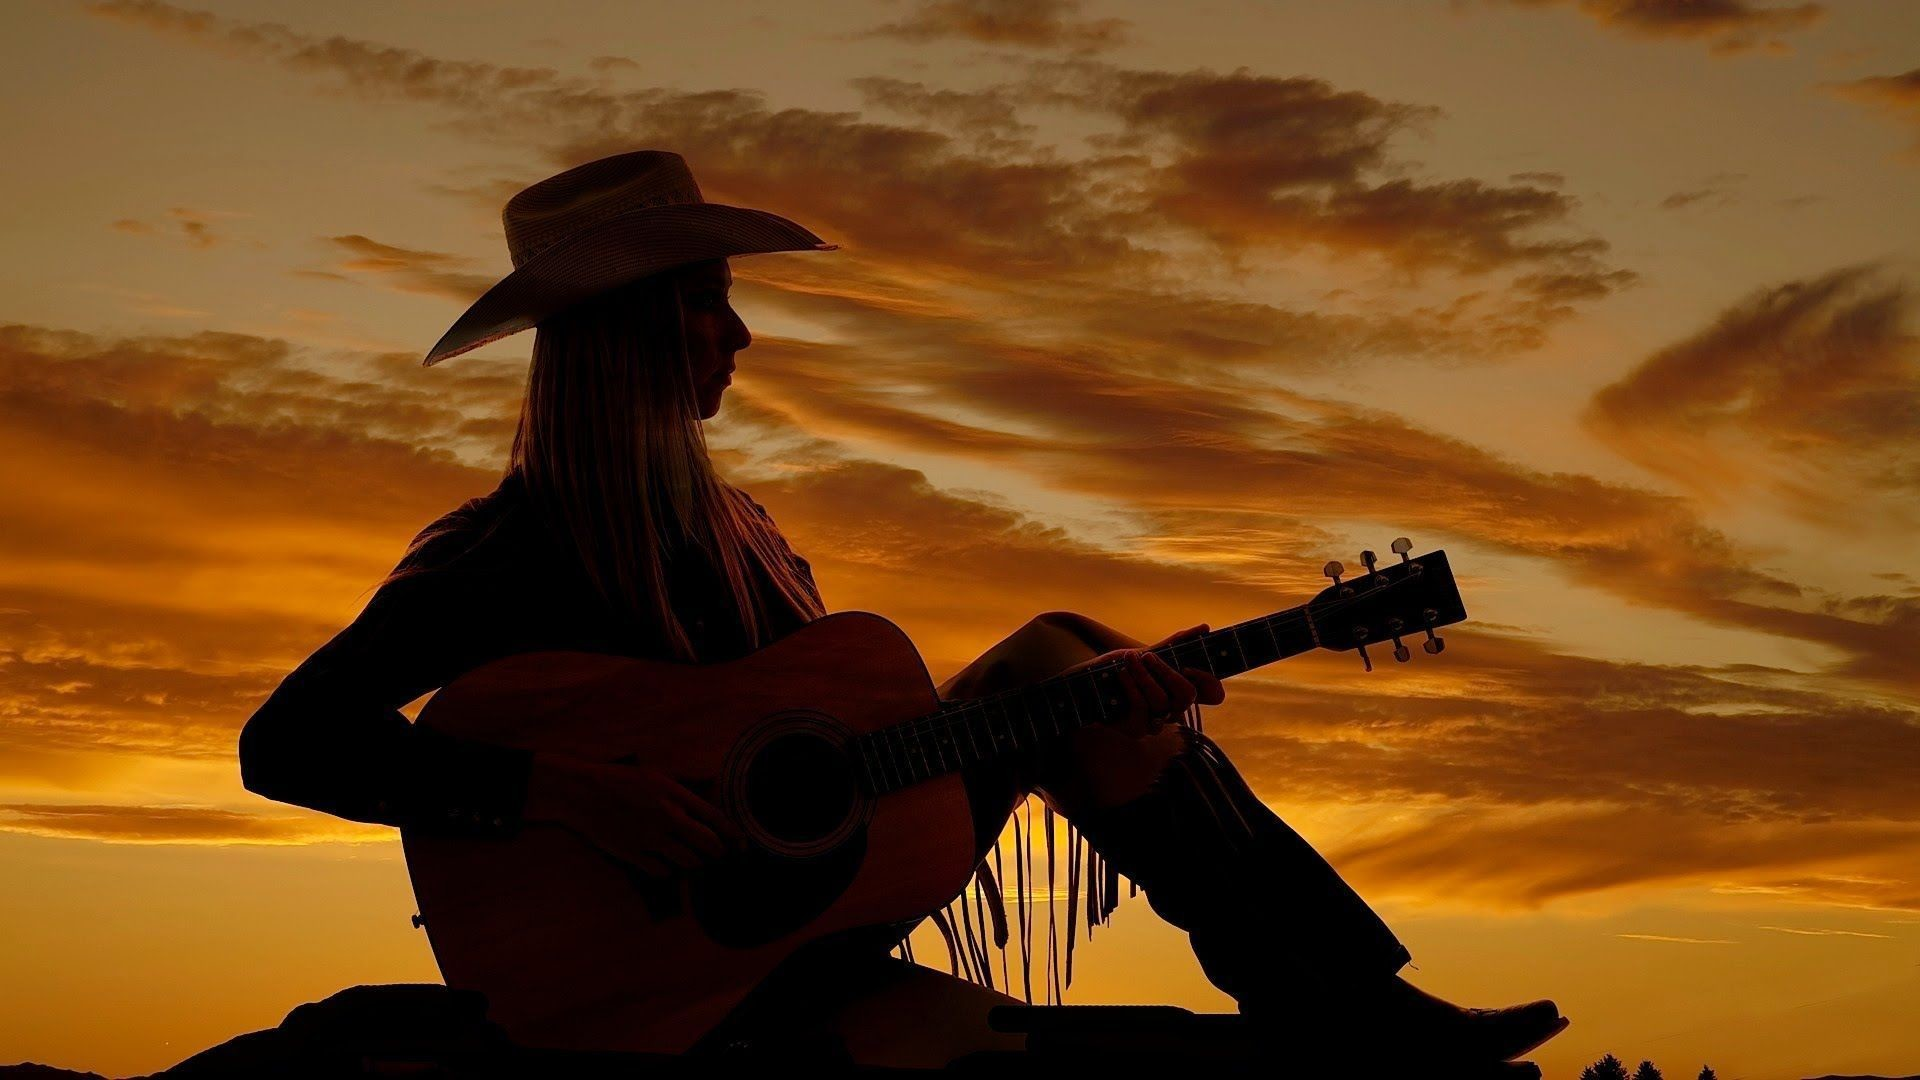 Country Music Wallpaper 1